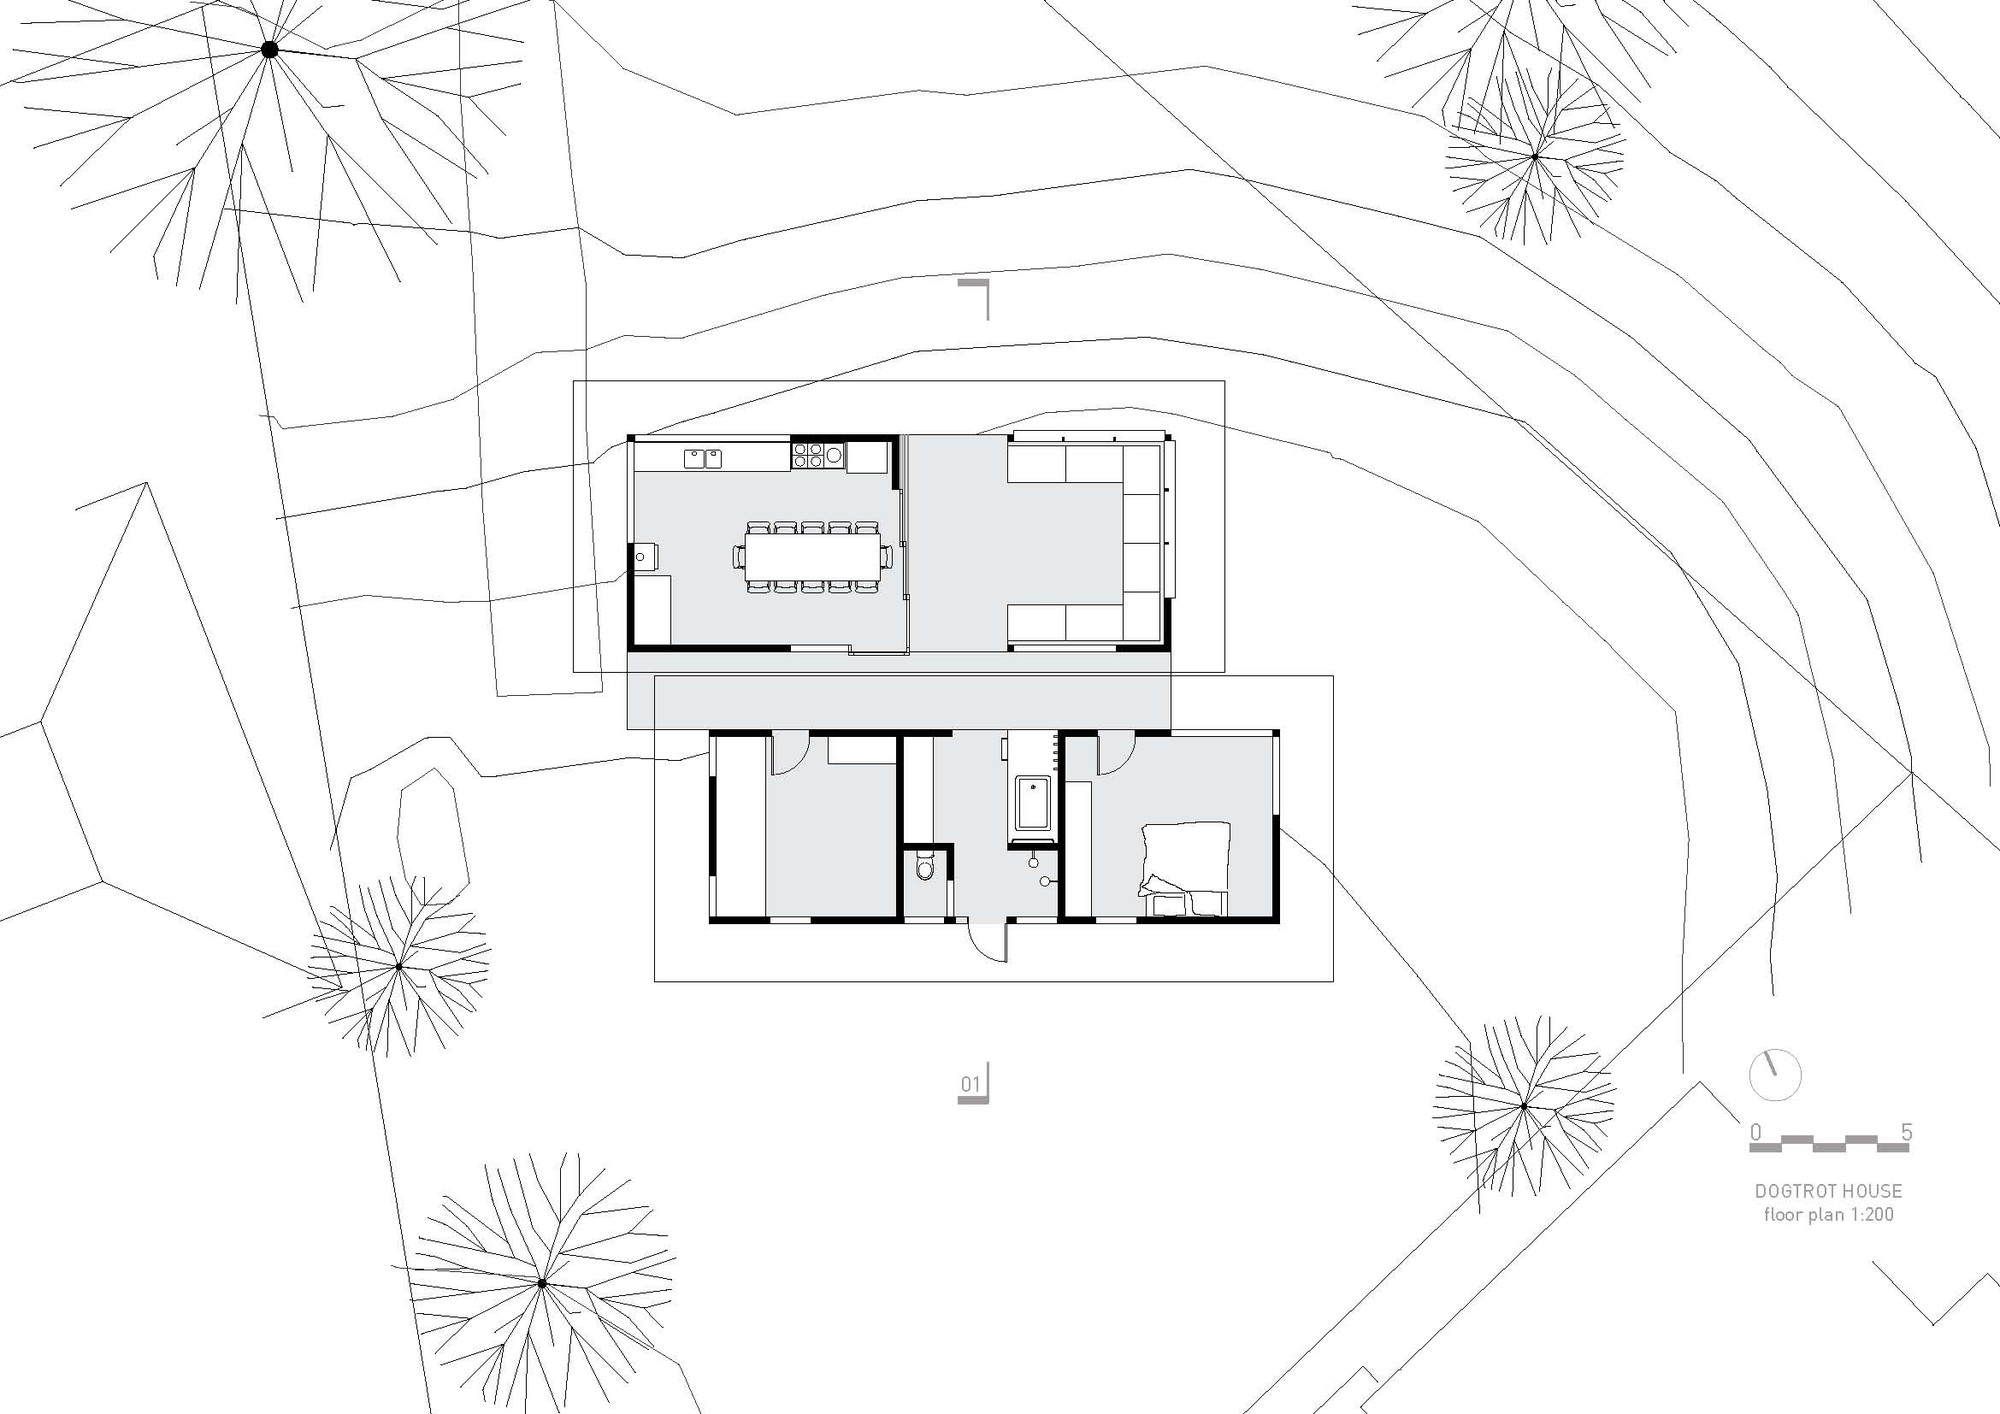 gallery of the dogtrot house dunn hillam architects 15 zoom image view original size